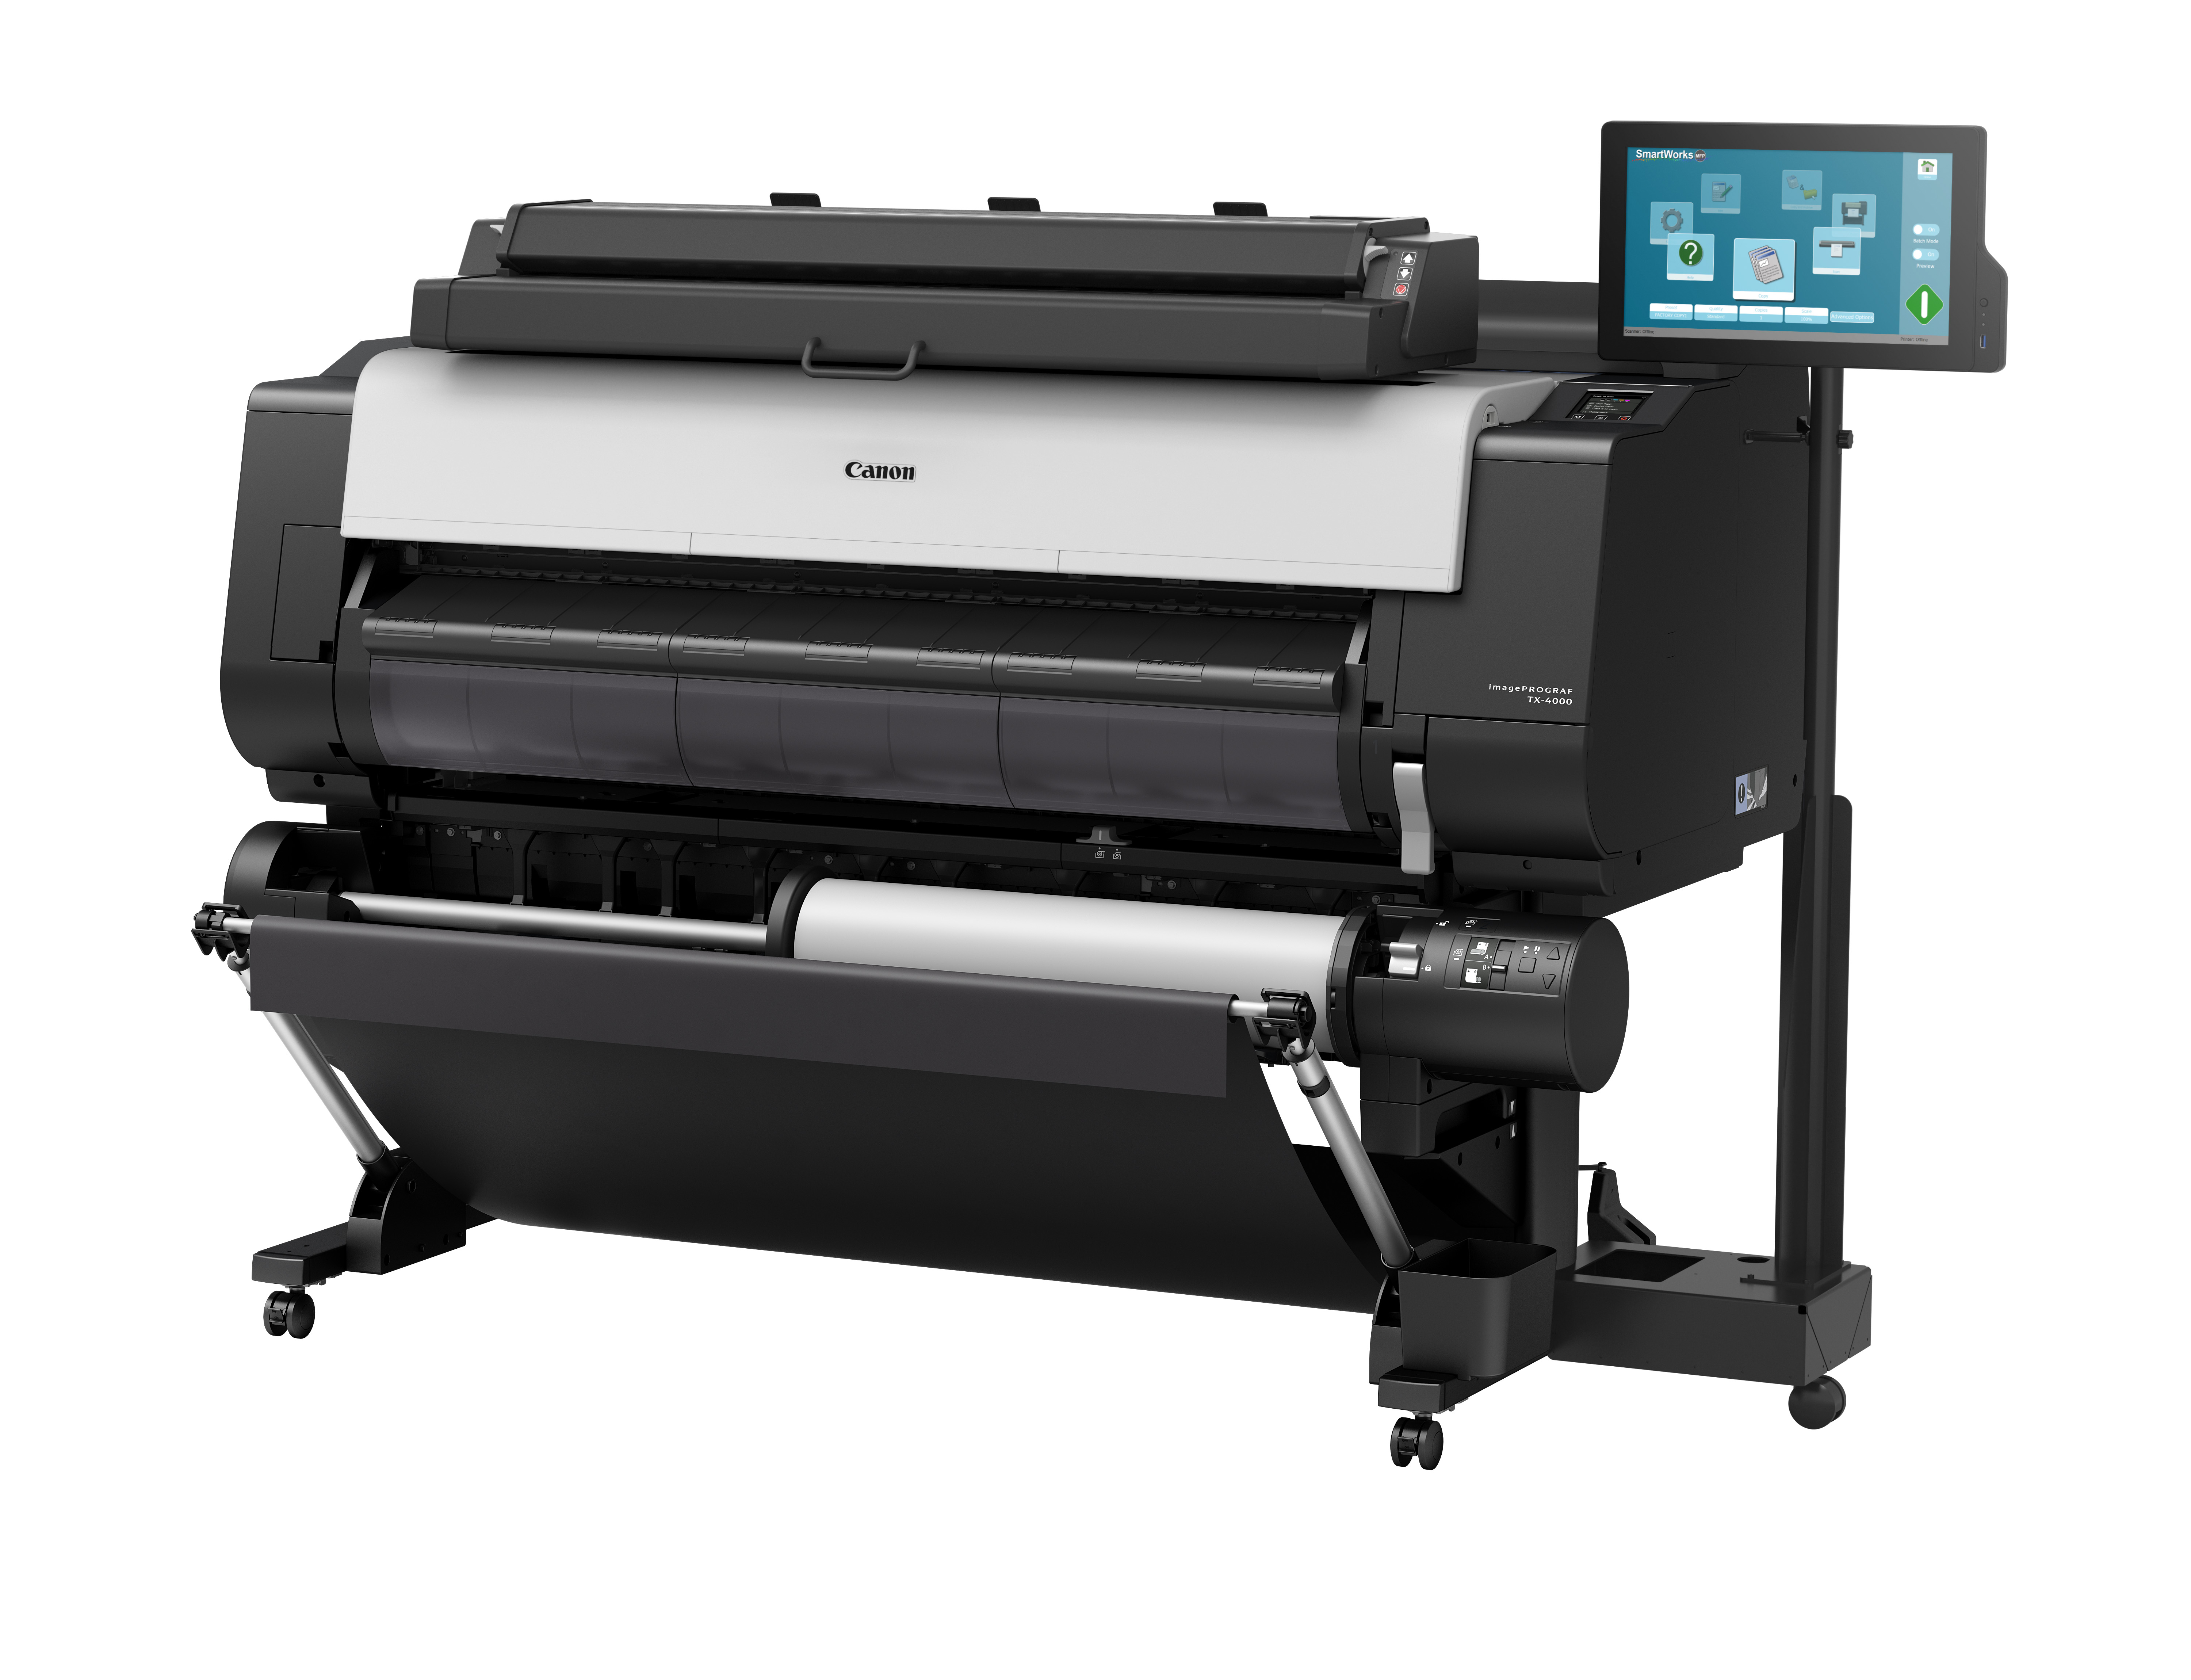 WDV Canon imagePROGRAF TX-4000 MFP T36